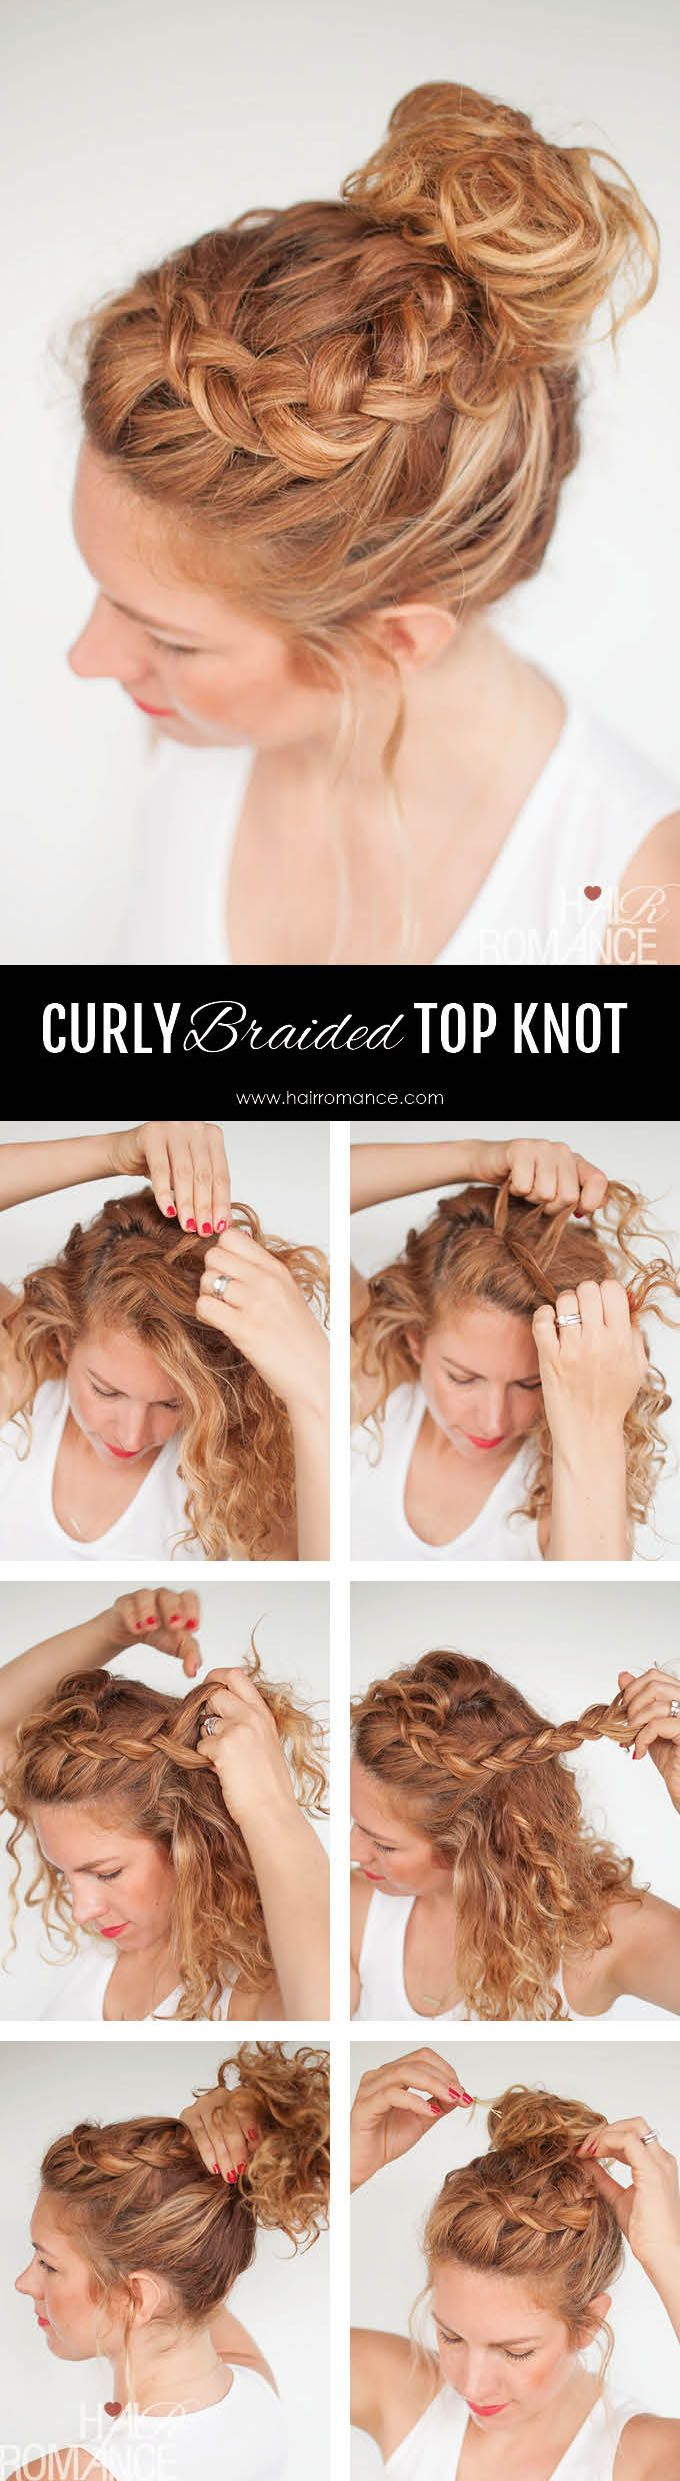 Hair Romance  Everyday Curly Hairstyles  Curly Braided Top Knot Hairstyle  Tutorial